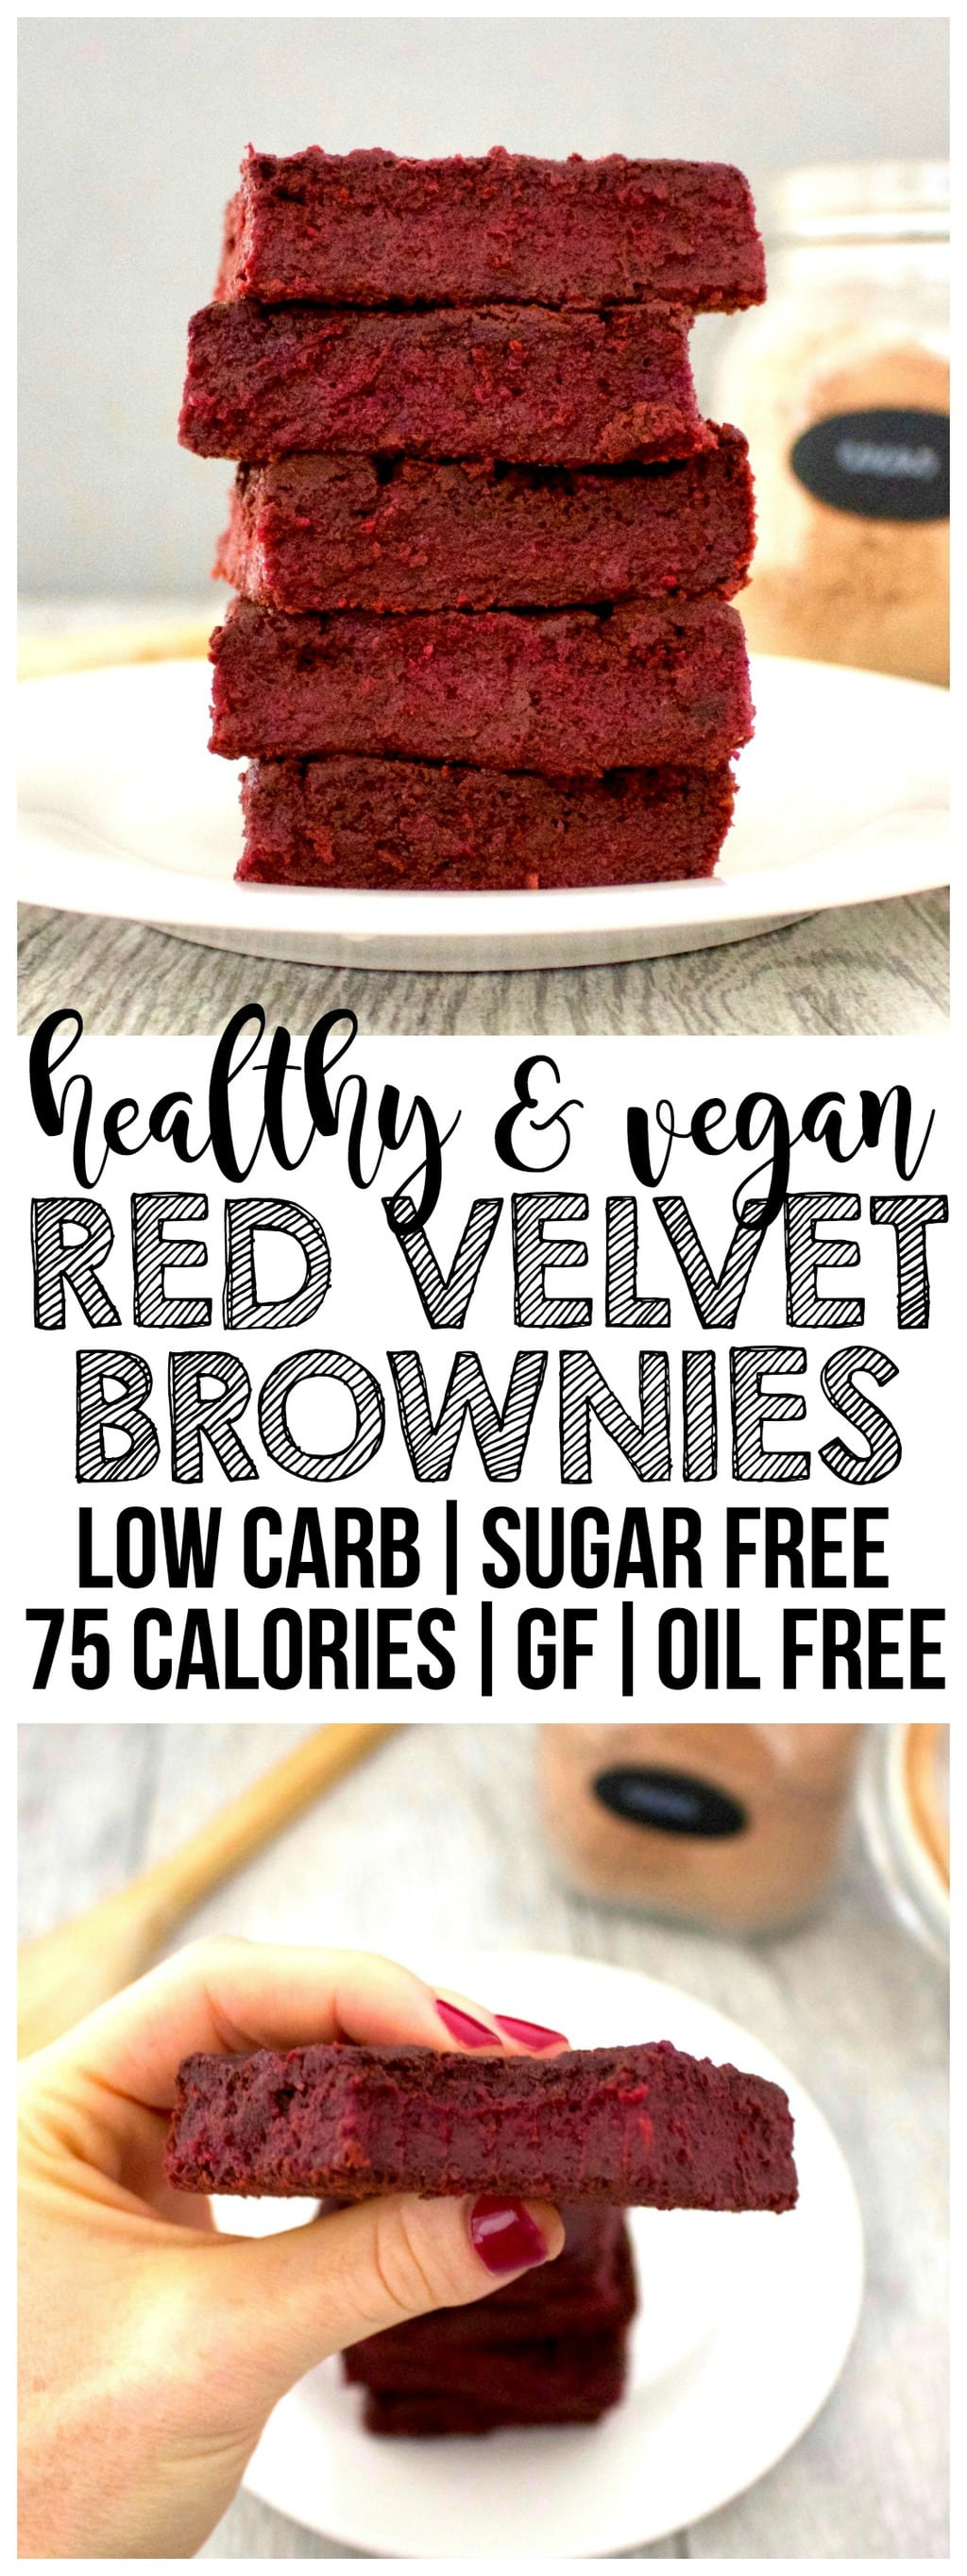 These HEALTHY Vegan Red Velvet Brownies are AMAZING! They are low-carb, sugar-free, gluten-free, low-fat, oil-free, and low-calorie - only 75 calories each!